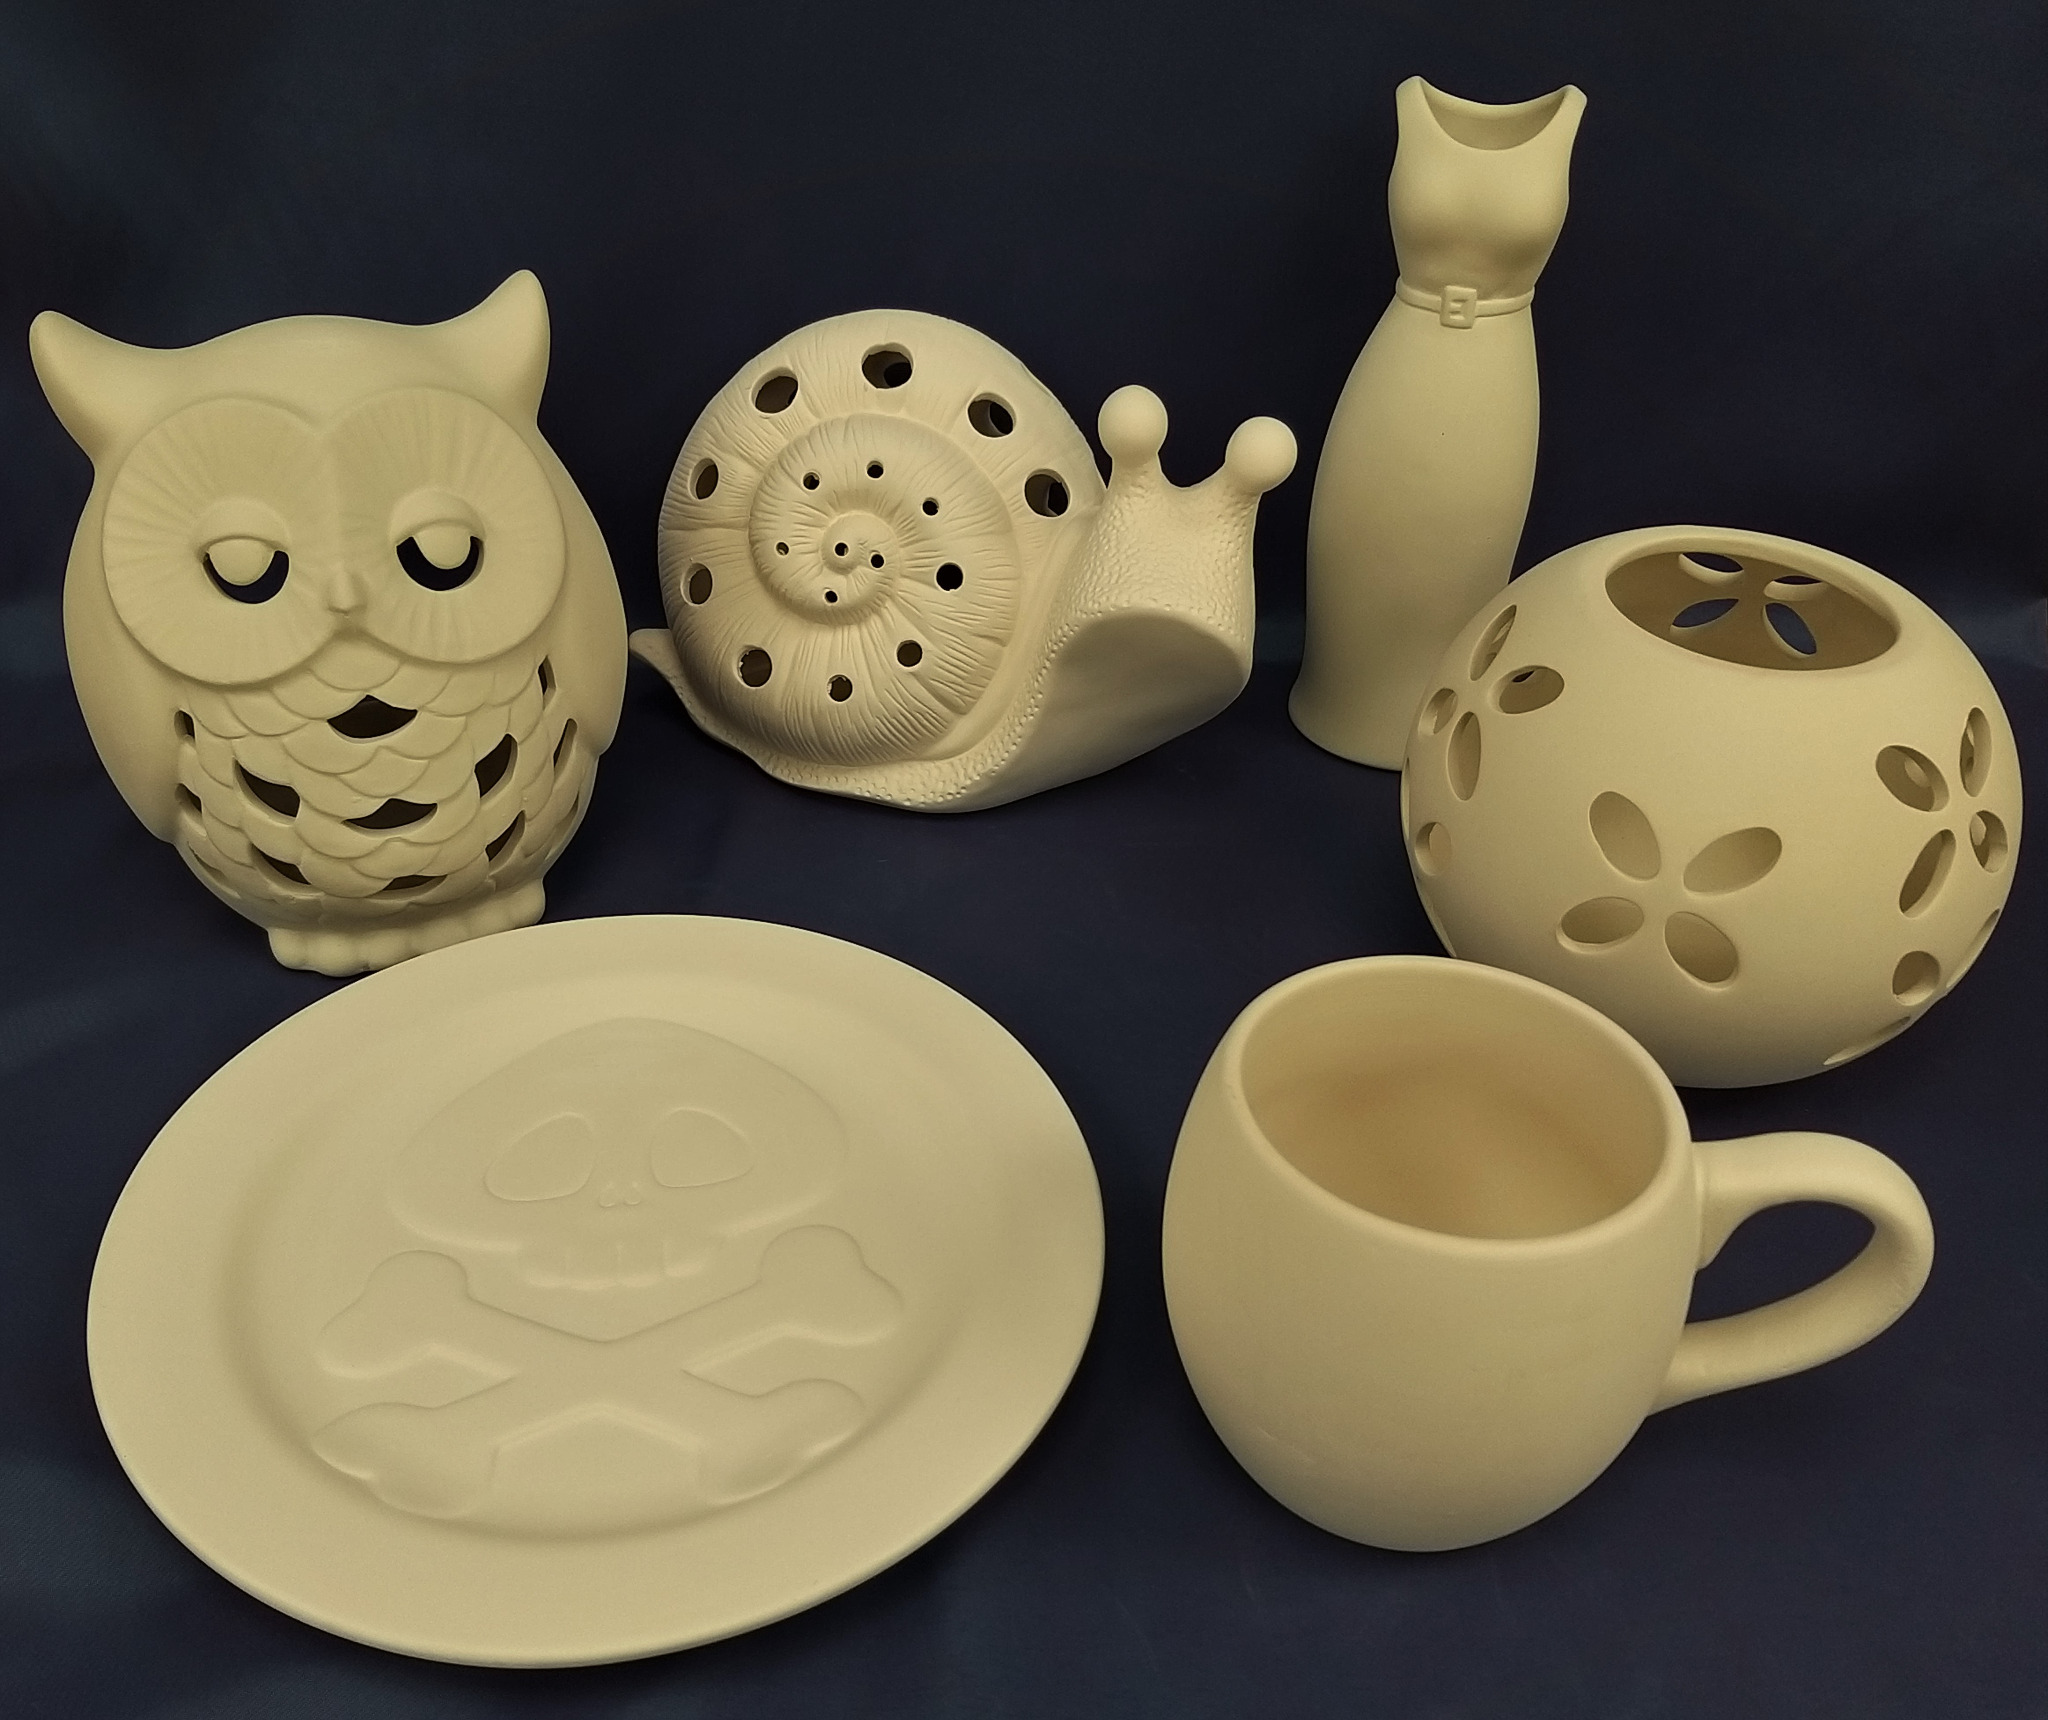 Home/Kitchen Ware and Other Items Best Fired